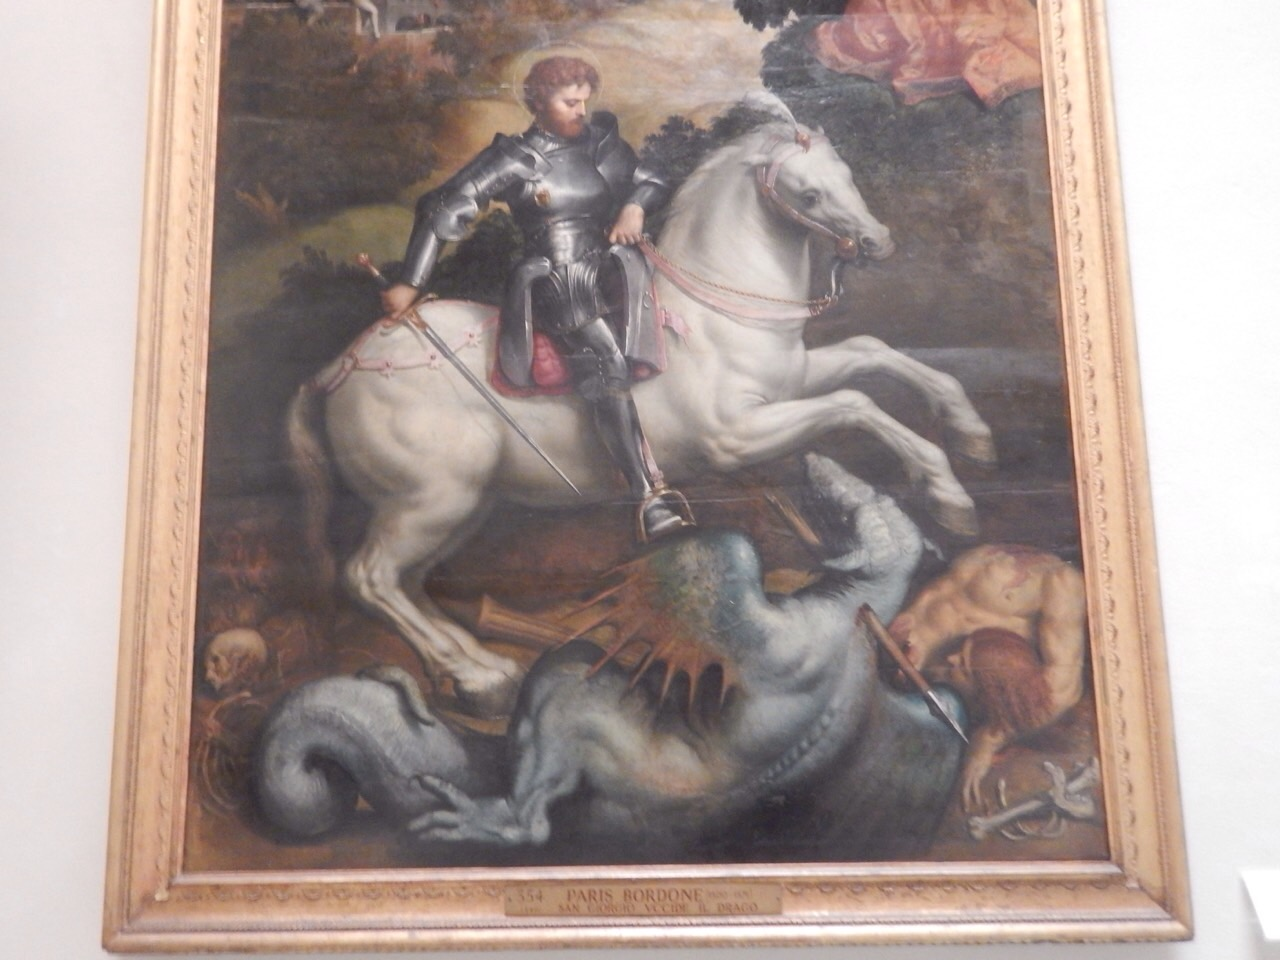 Saint George pooped up in Italy too.